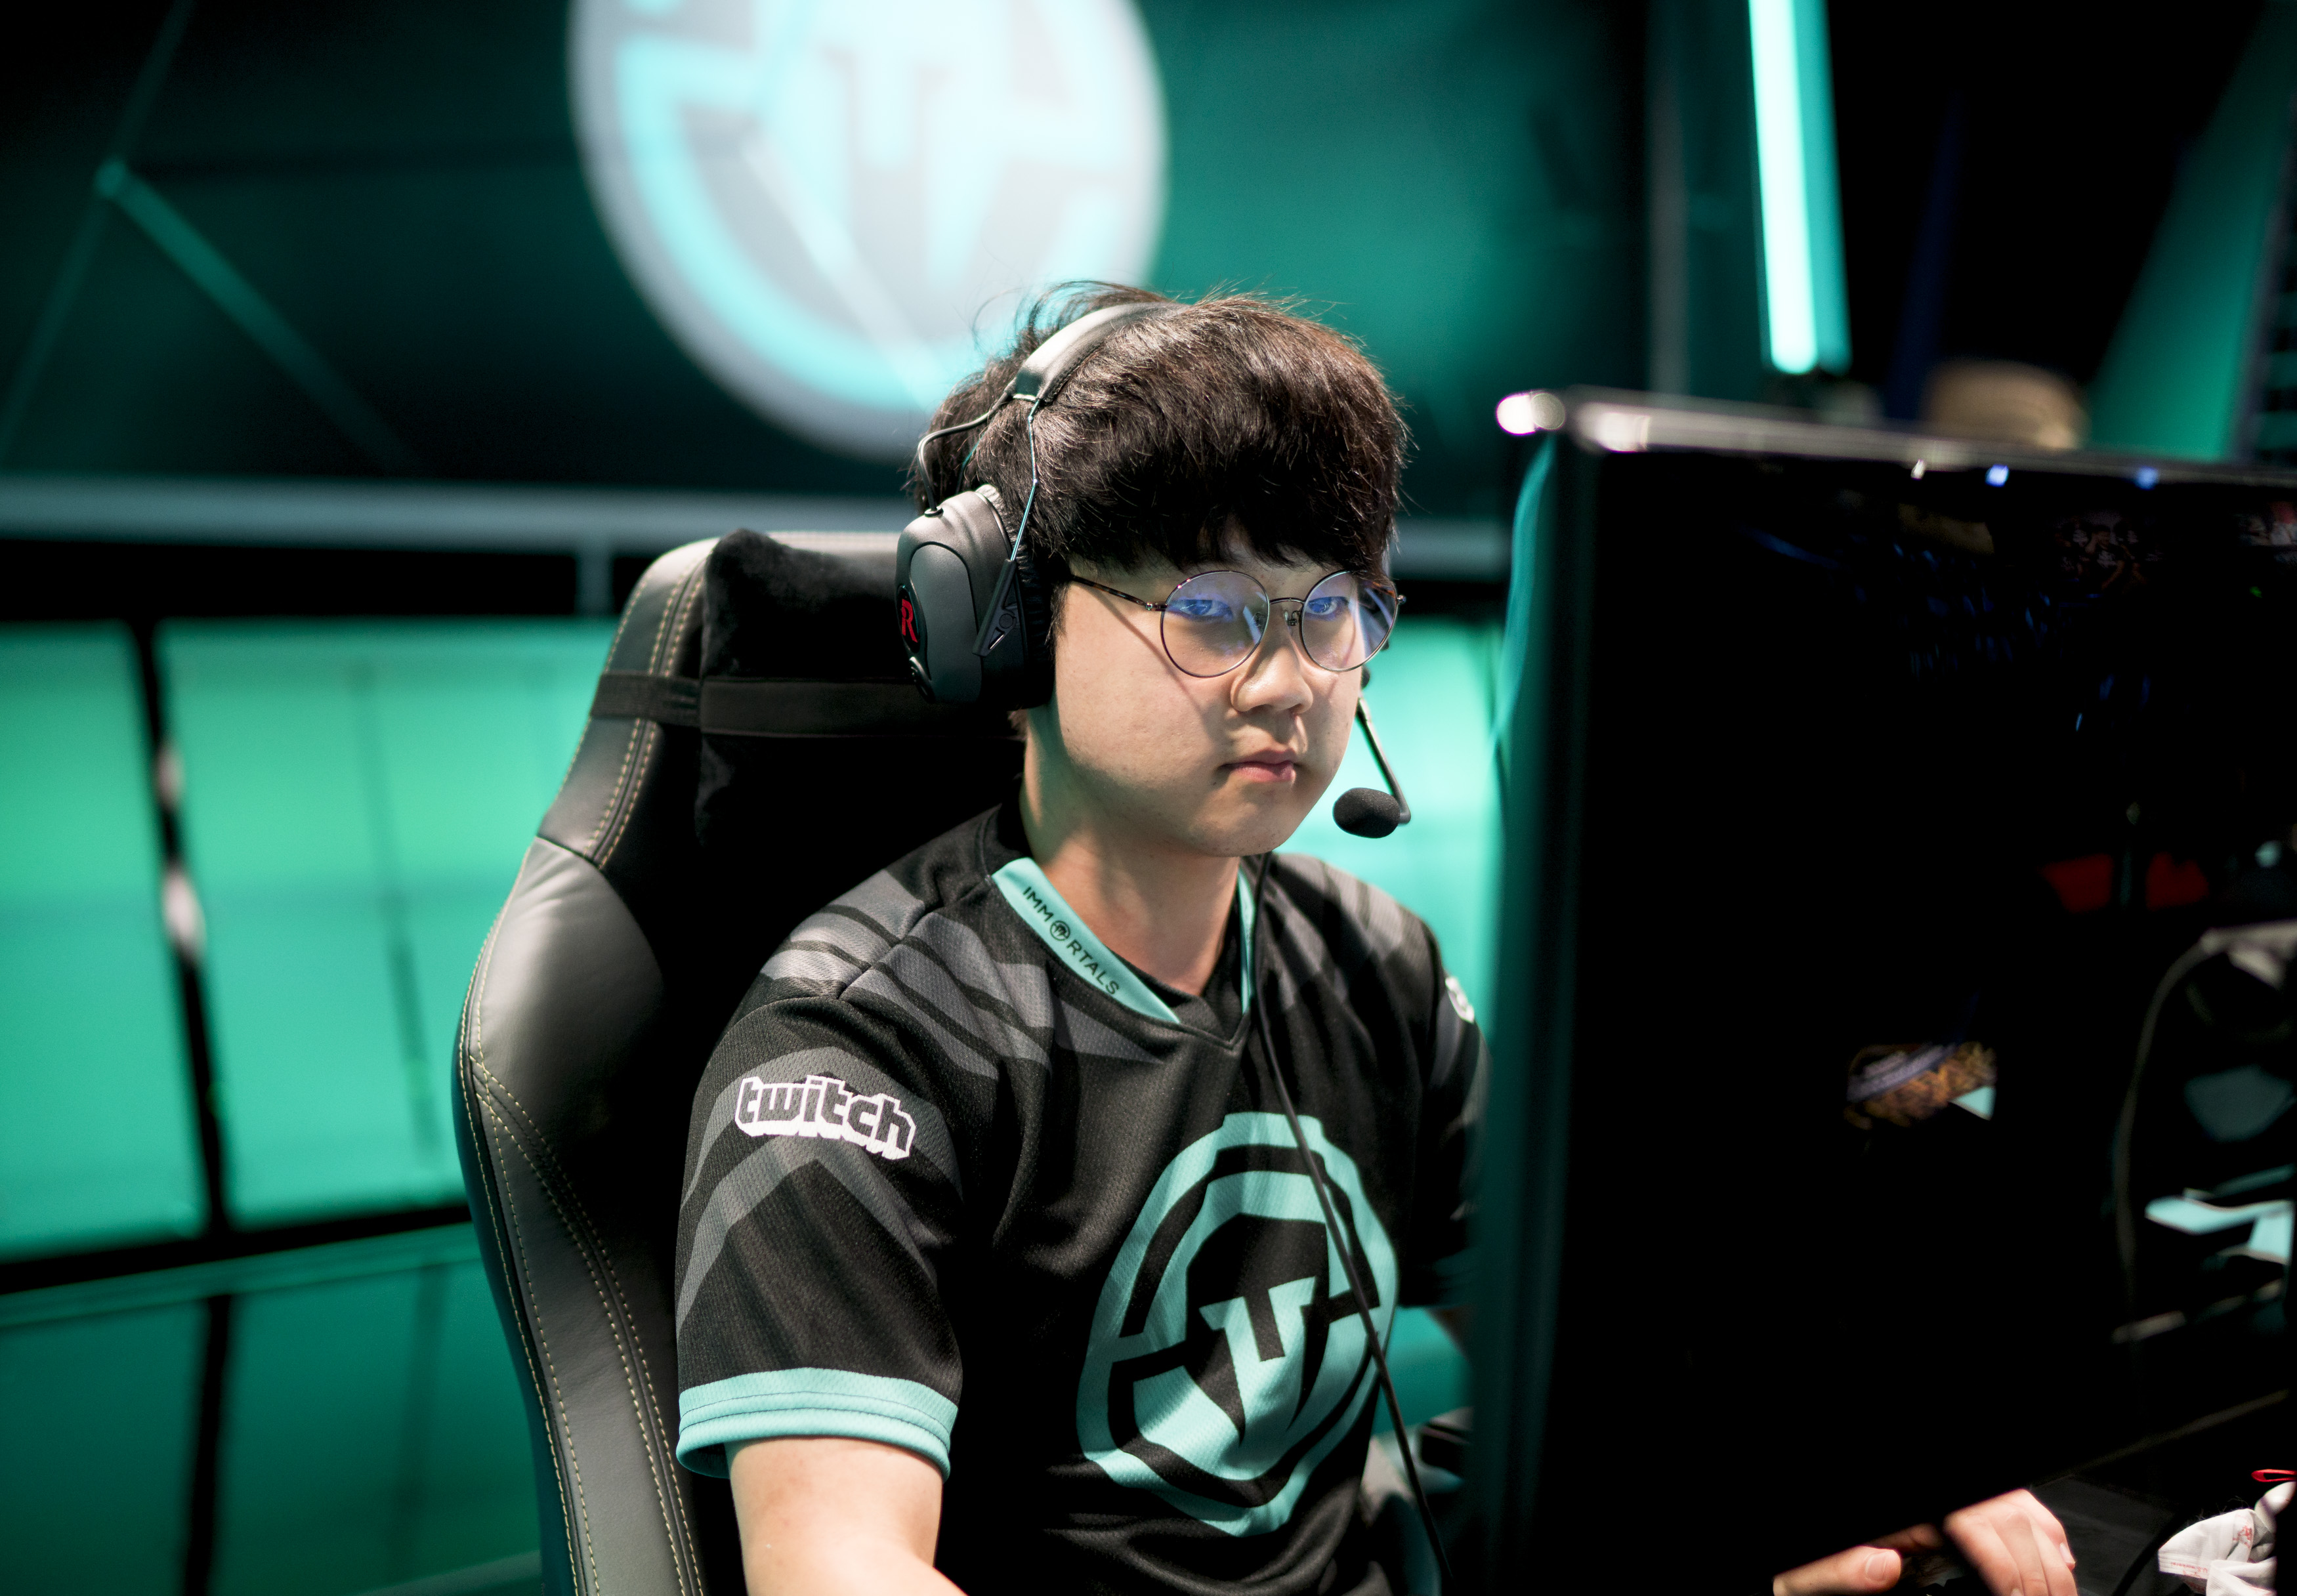 lcs gaming chair padded zero gravity the rift herald archives lck page 1